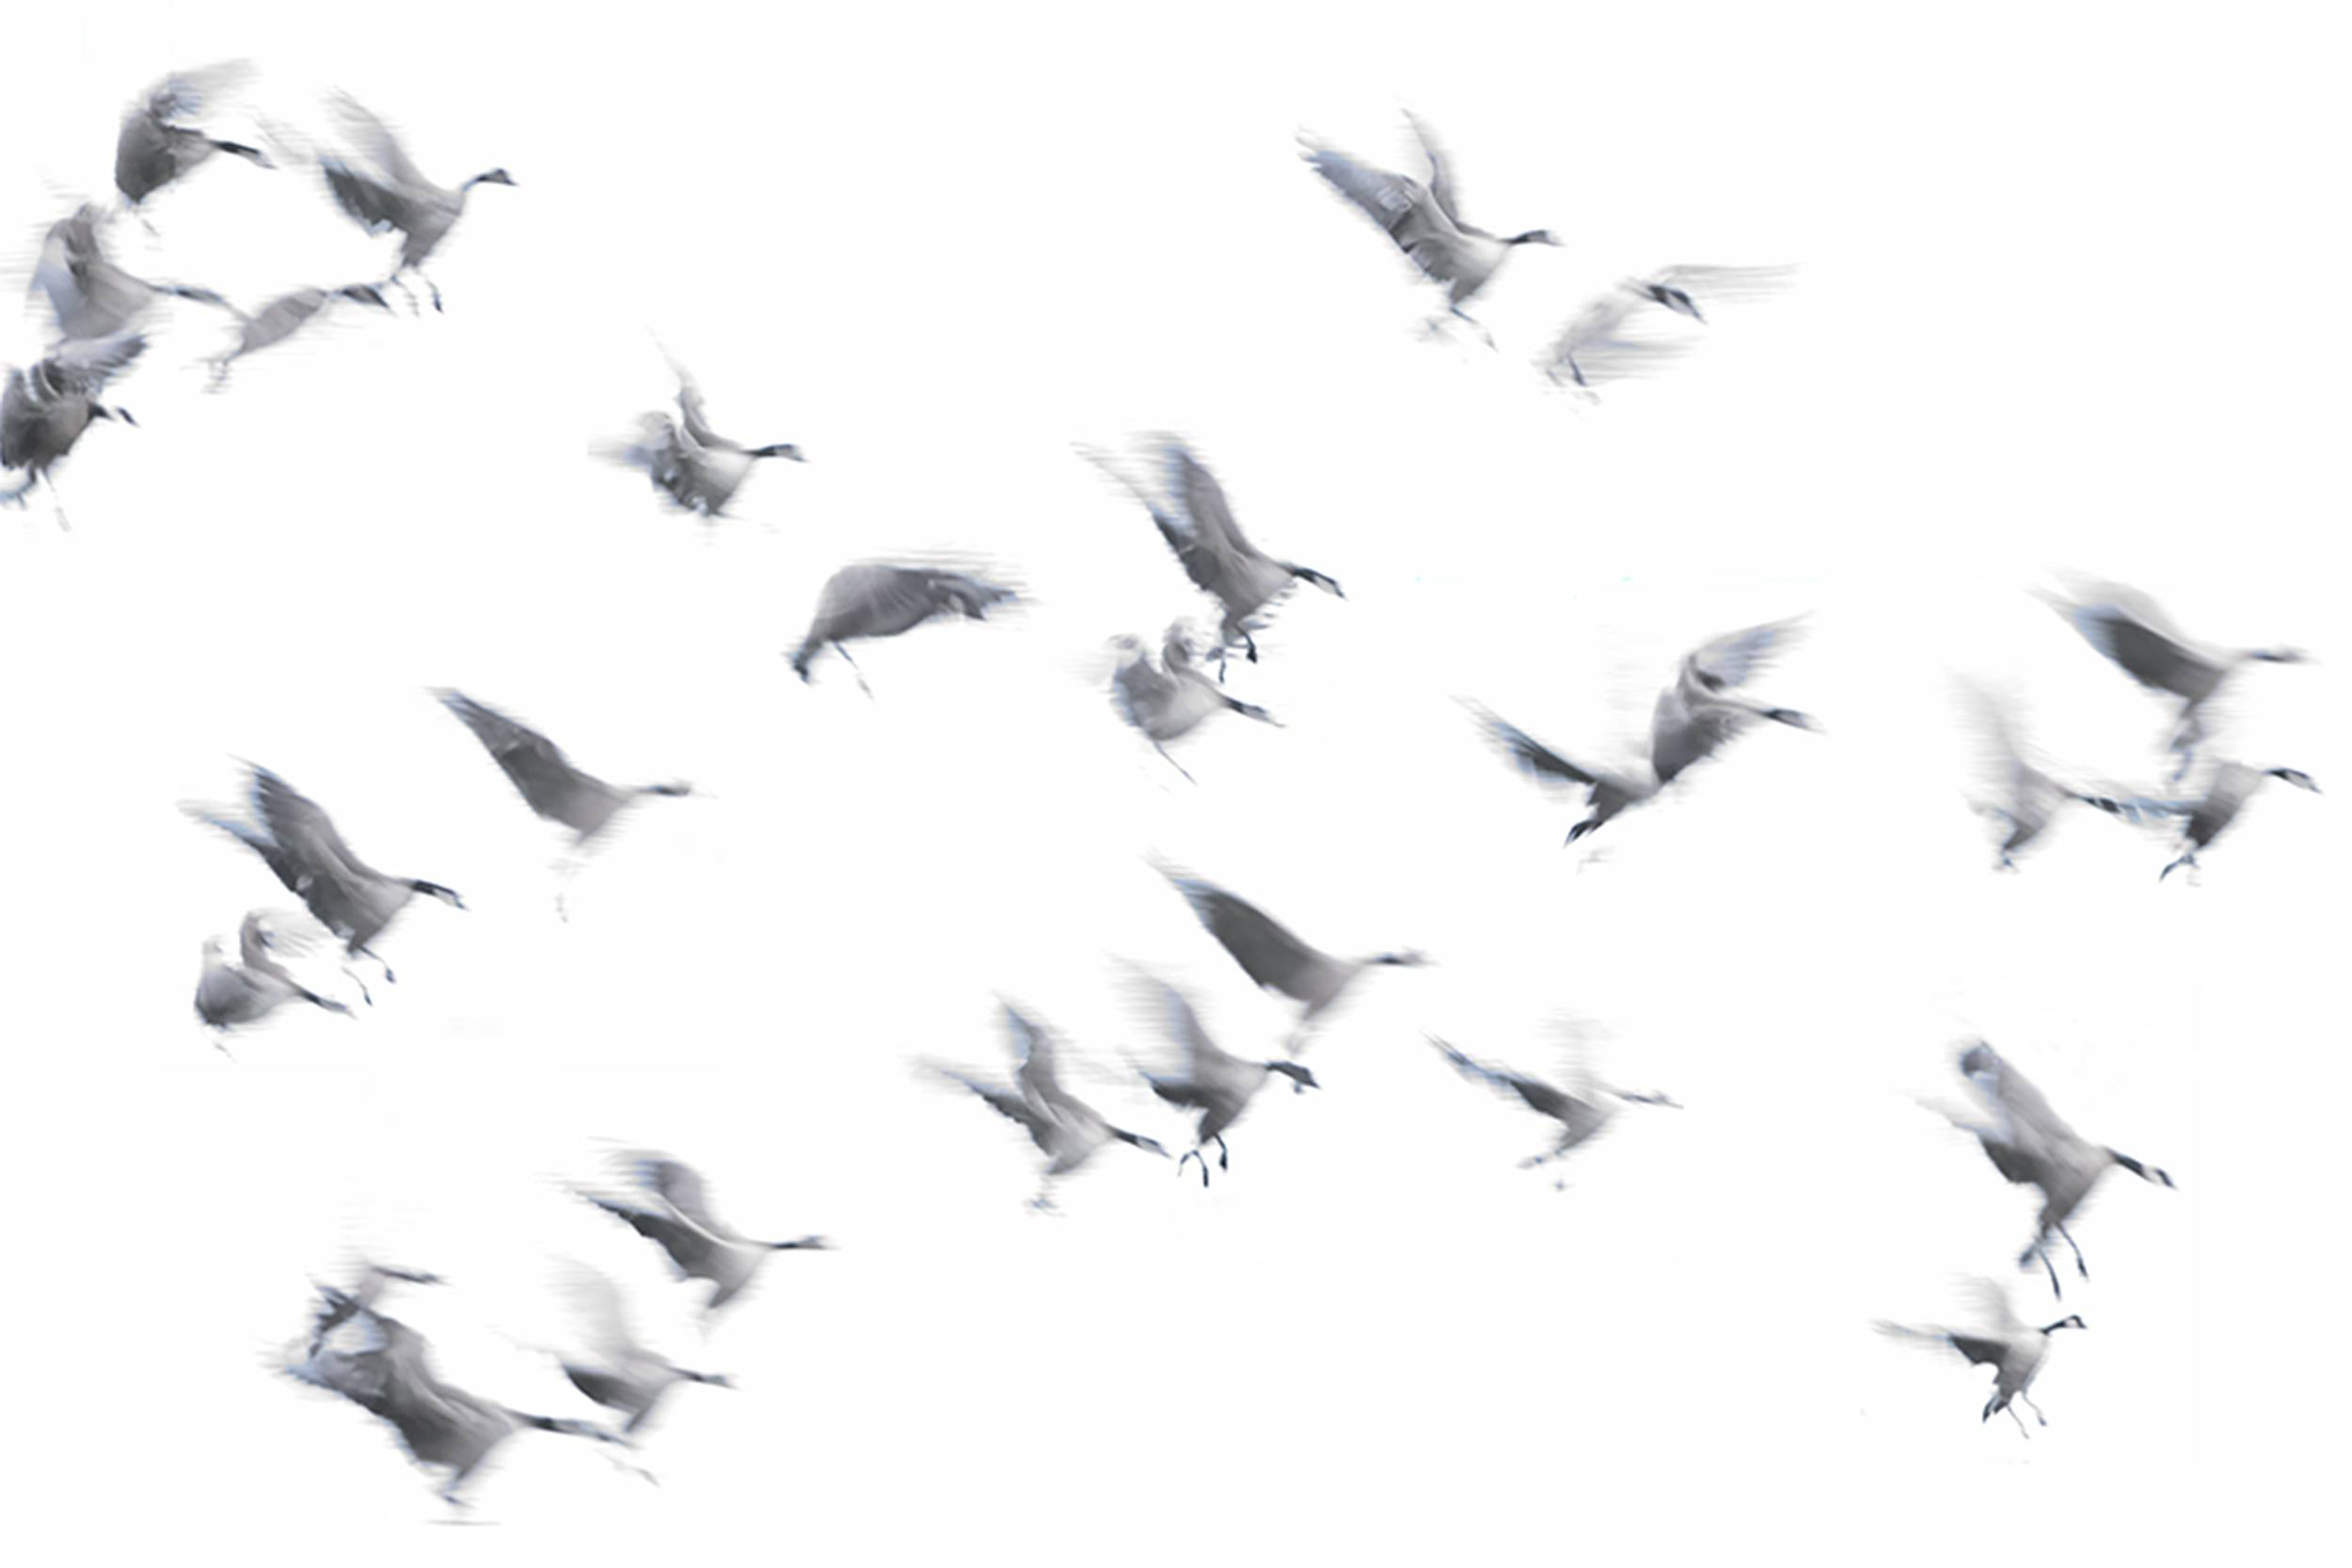 Flying geese small for website.jpg